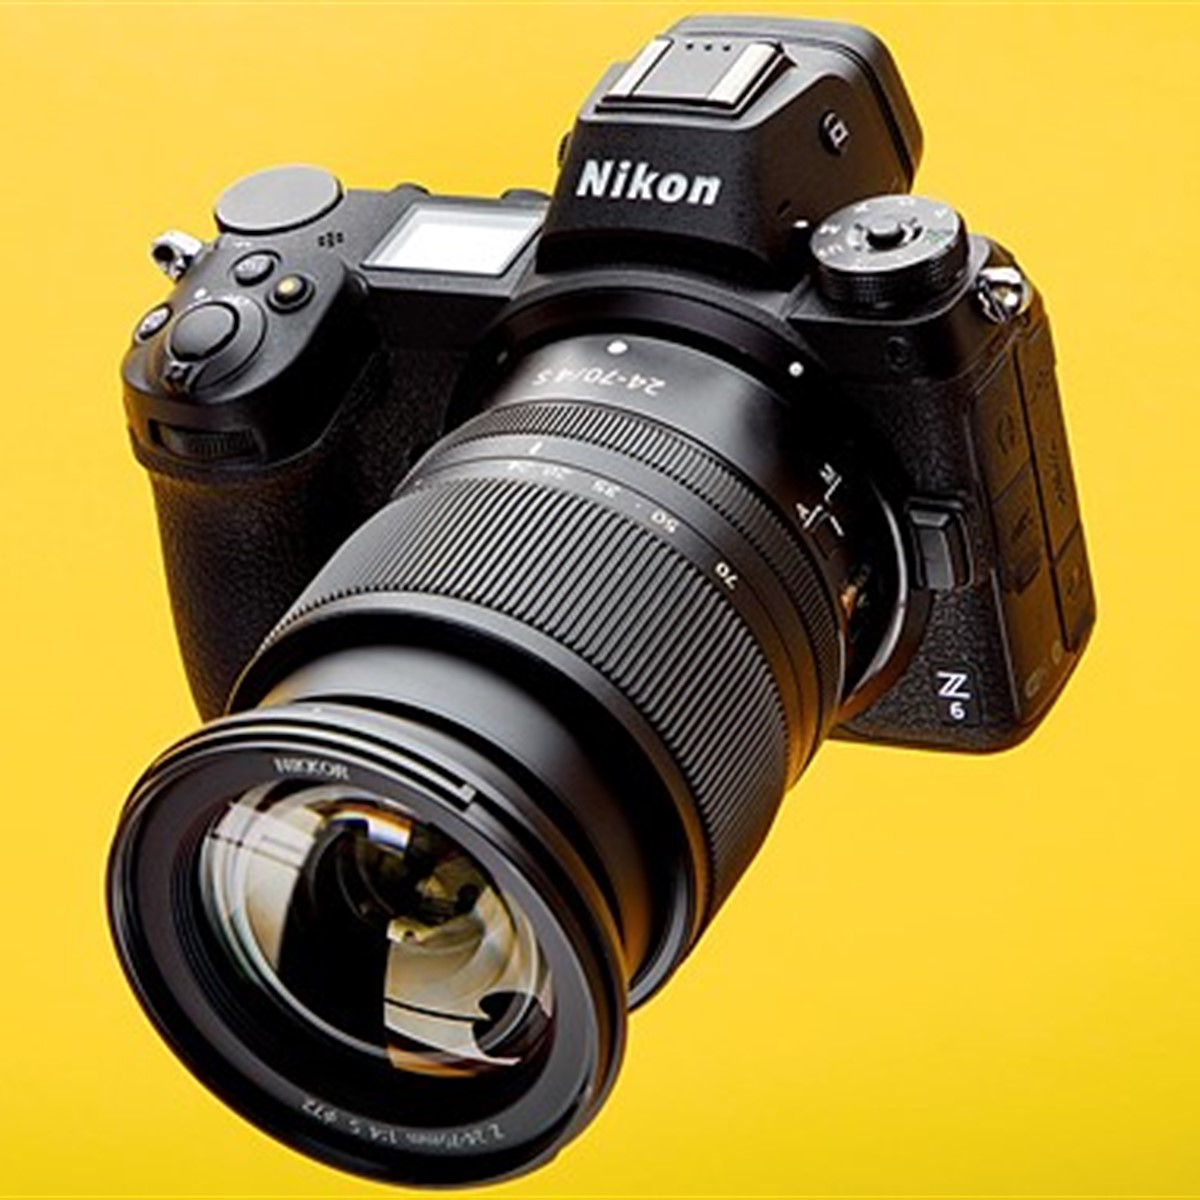 Nikon firmware update improves AF performance, adds eye-detection to